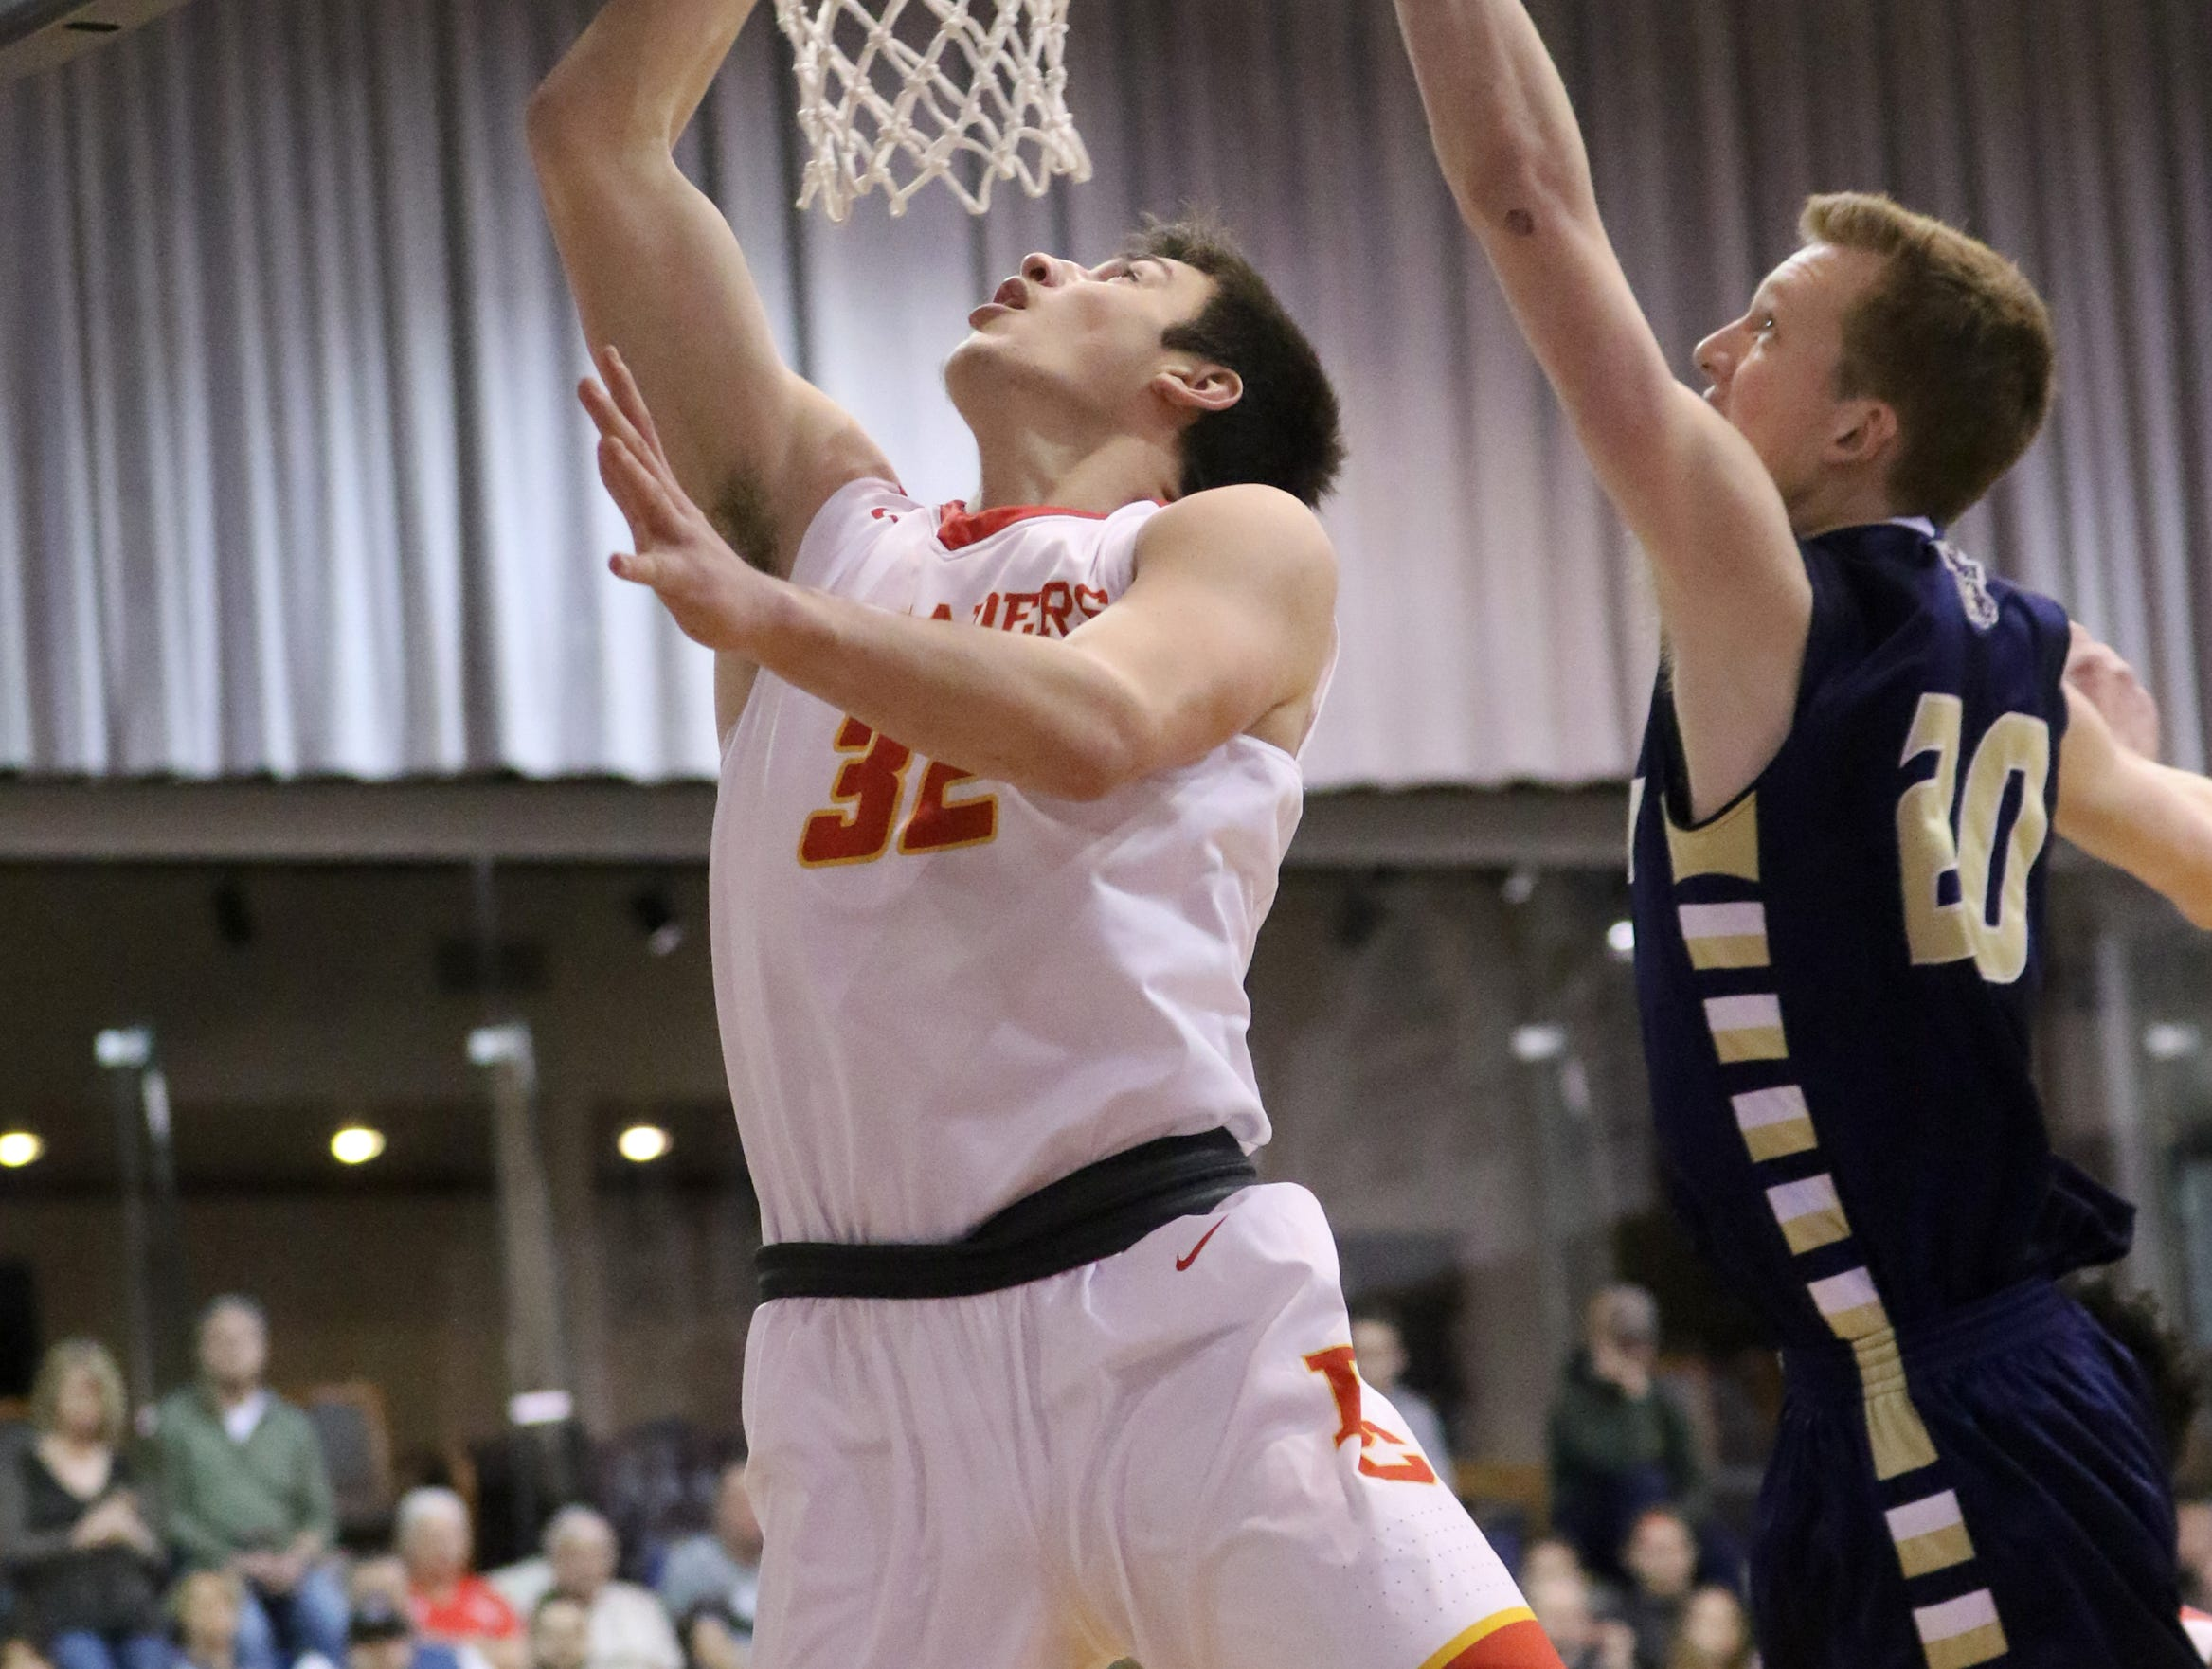 Zach Freemantle, of Bergen Catholic, goes for two against Sean Hansen, of Ramsey.  Sunday, February 10, 2019